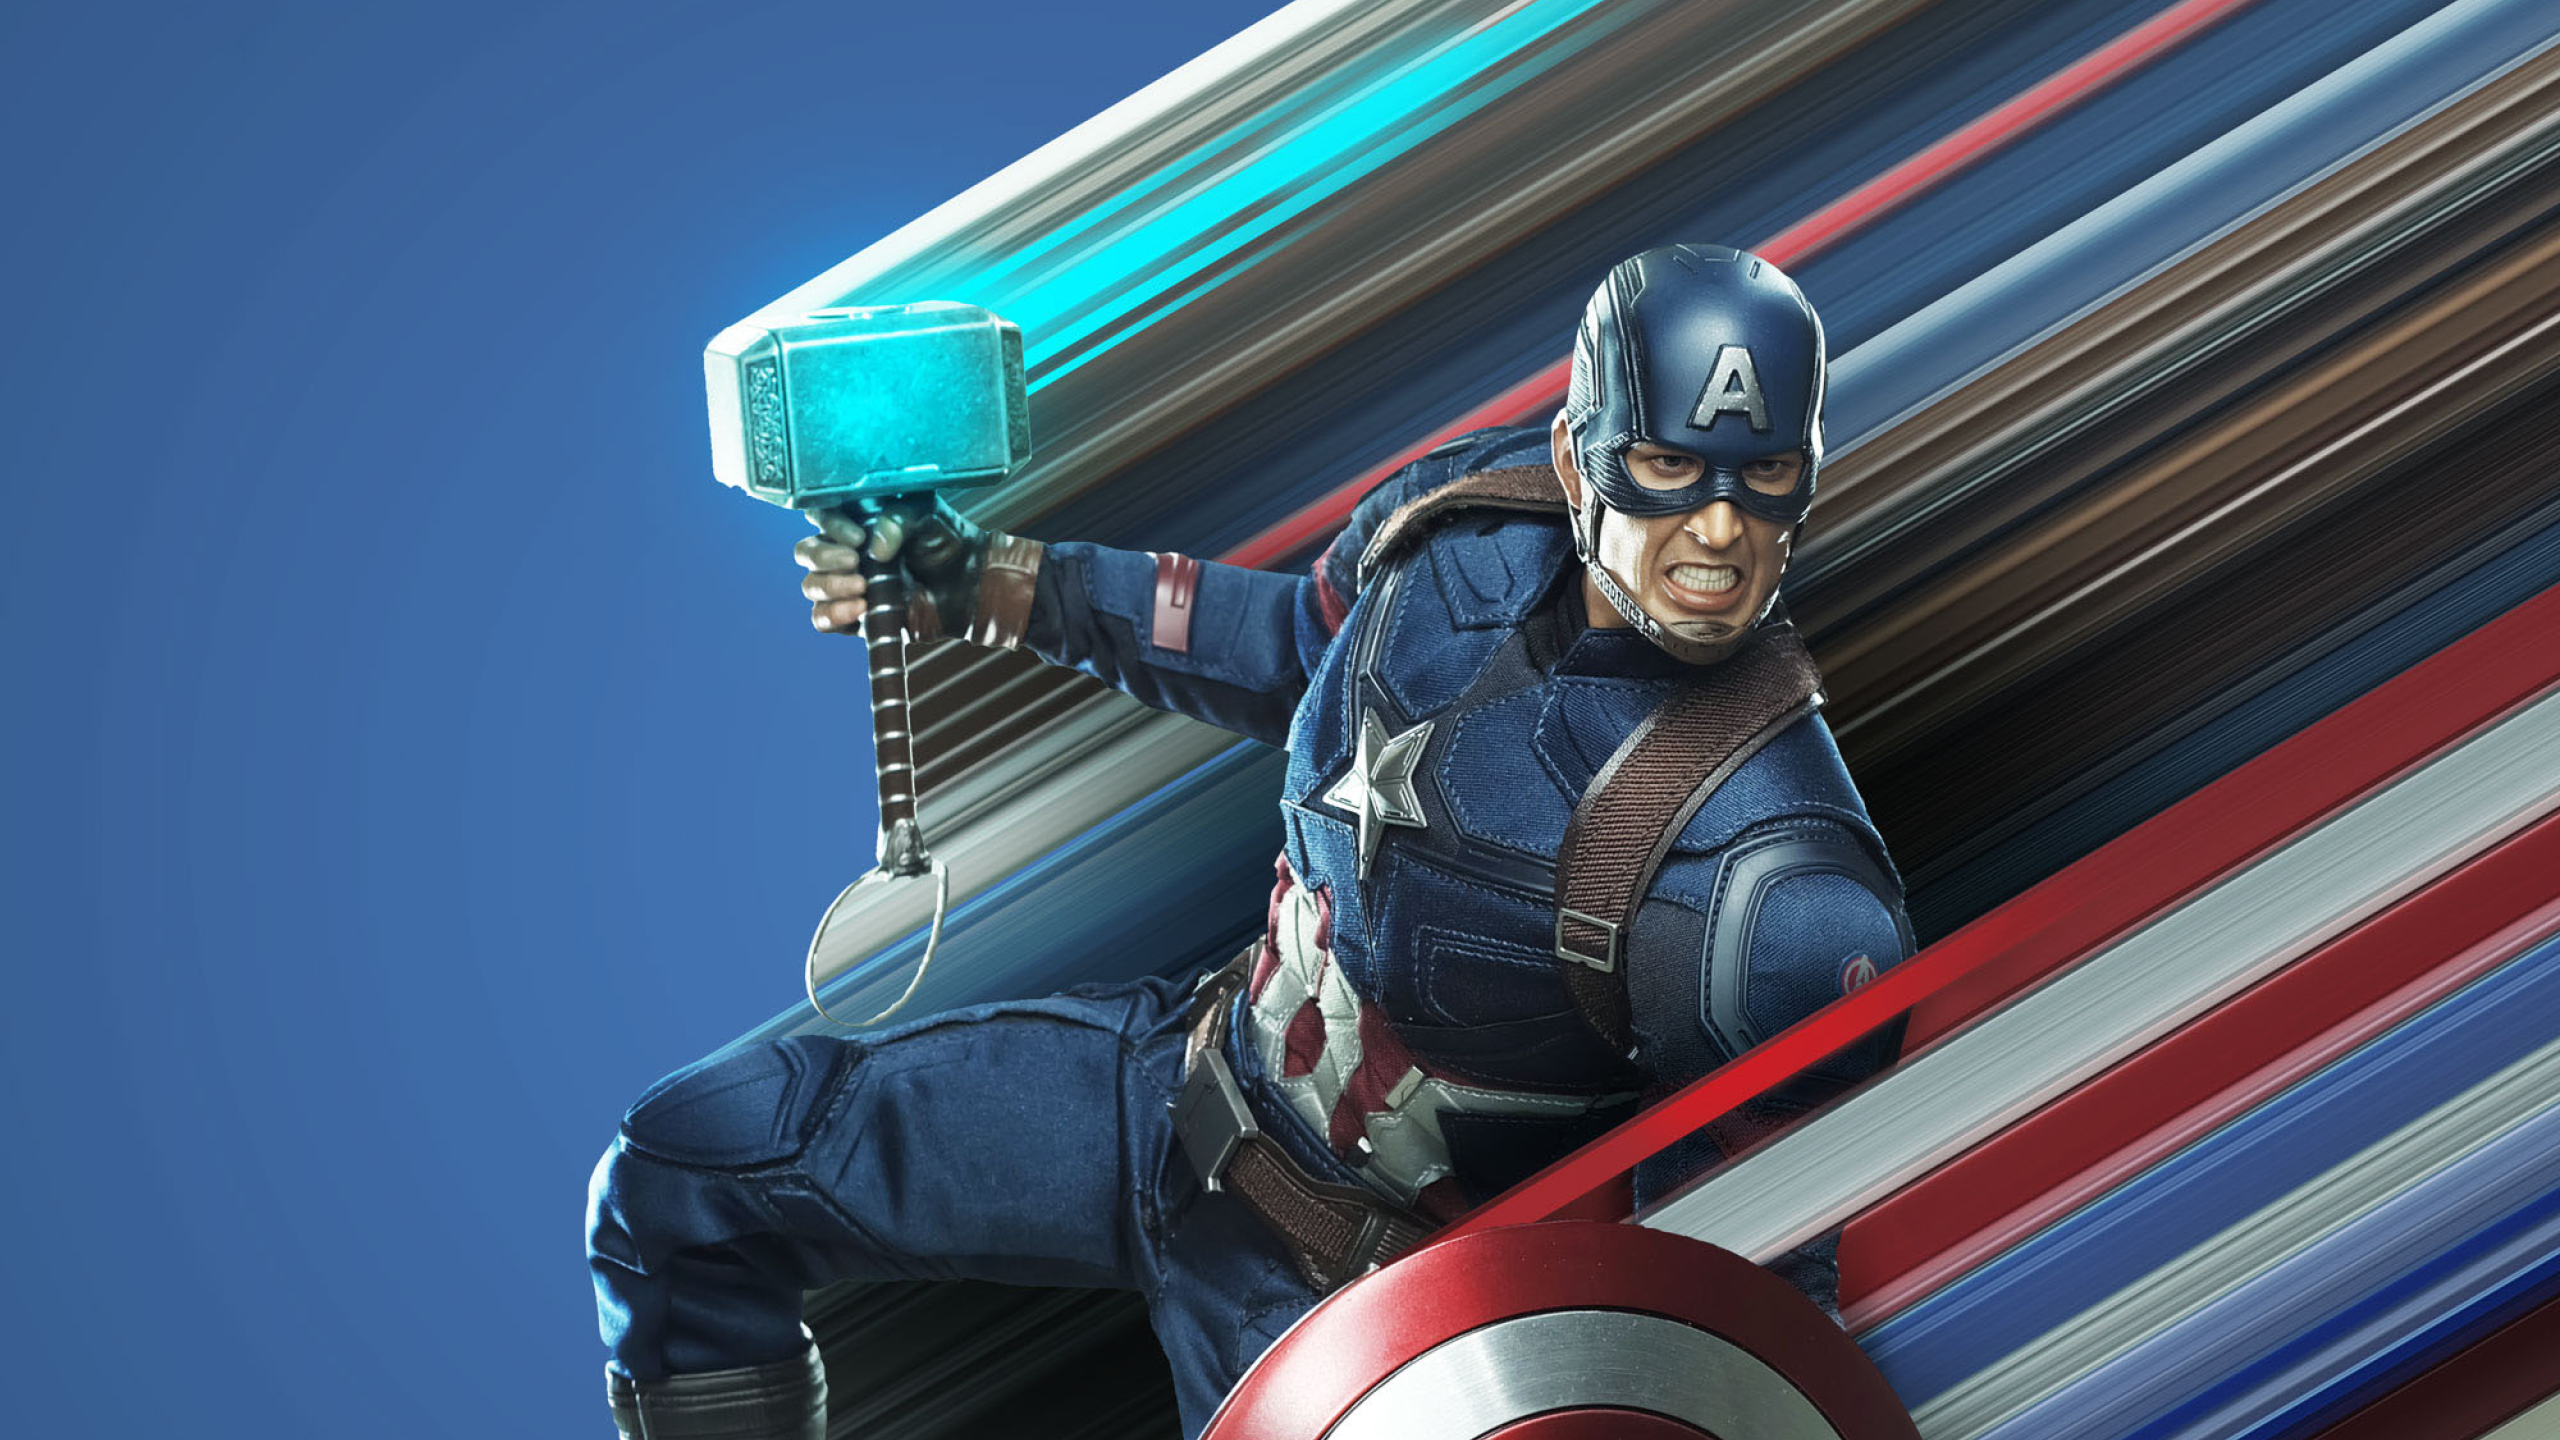 2560x1440 Captain America Avengers Endgame Art 1440p Resolution